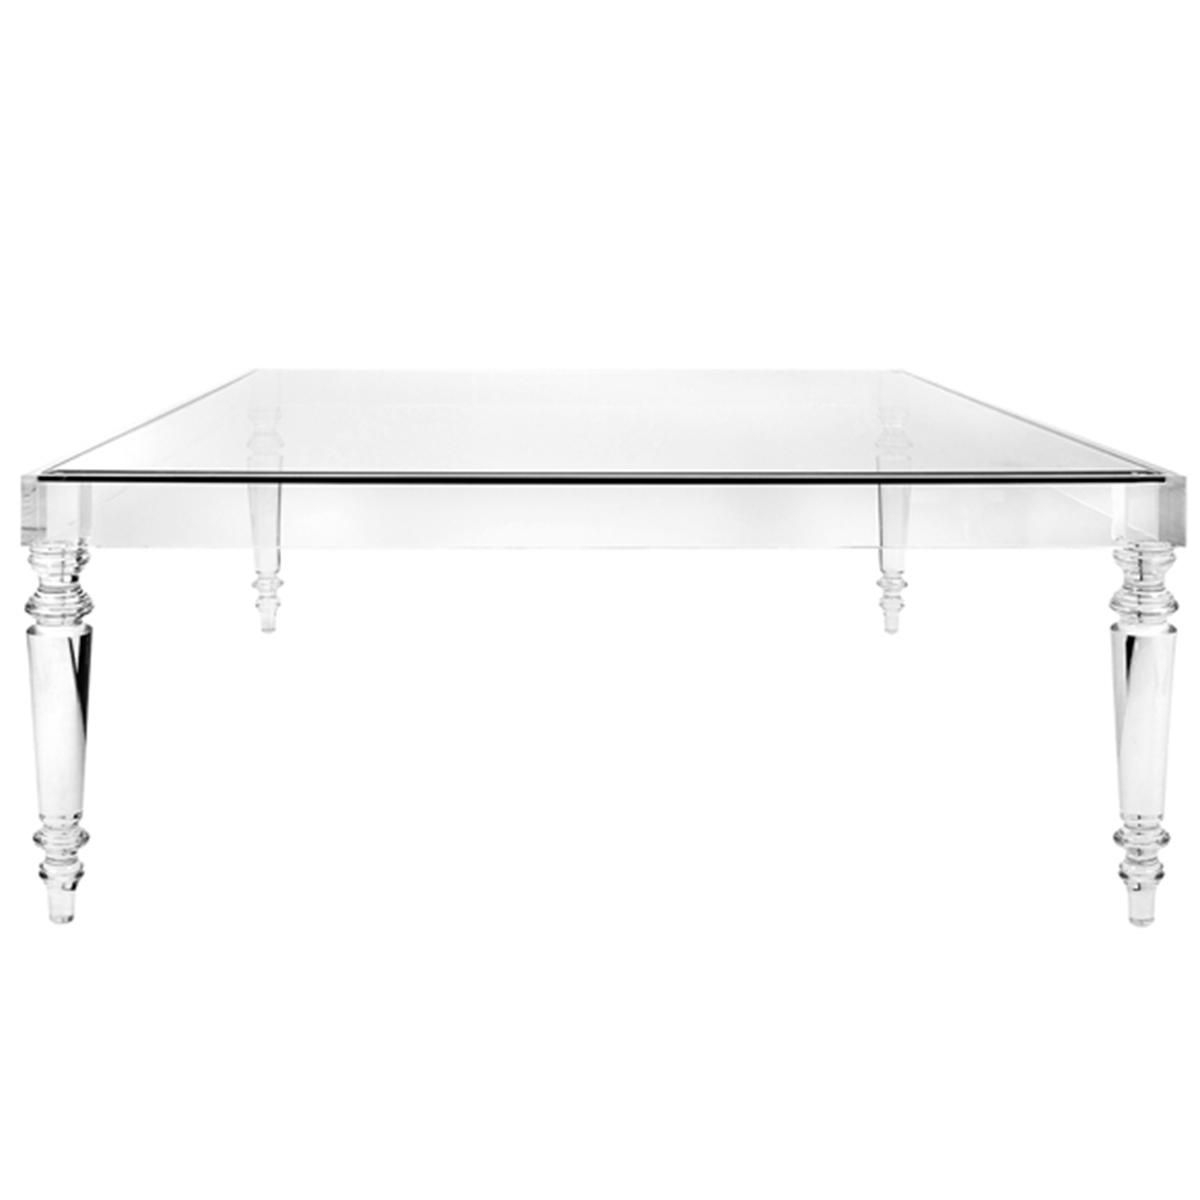 Melrose Modern Acrylic Coffee Table | House | Goals | Pinterest throughout Modern Acrylic Coffee Tables (Image 21 of 30)